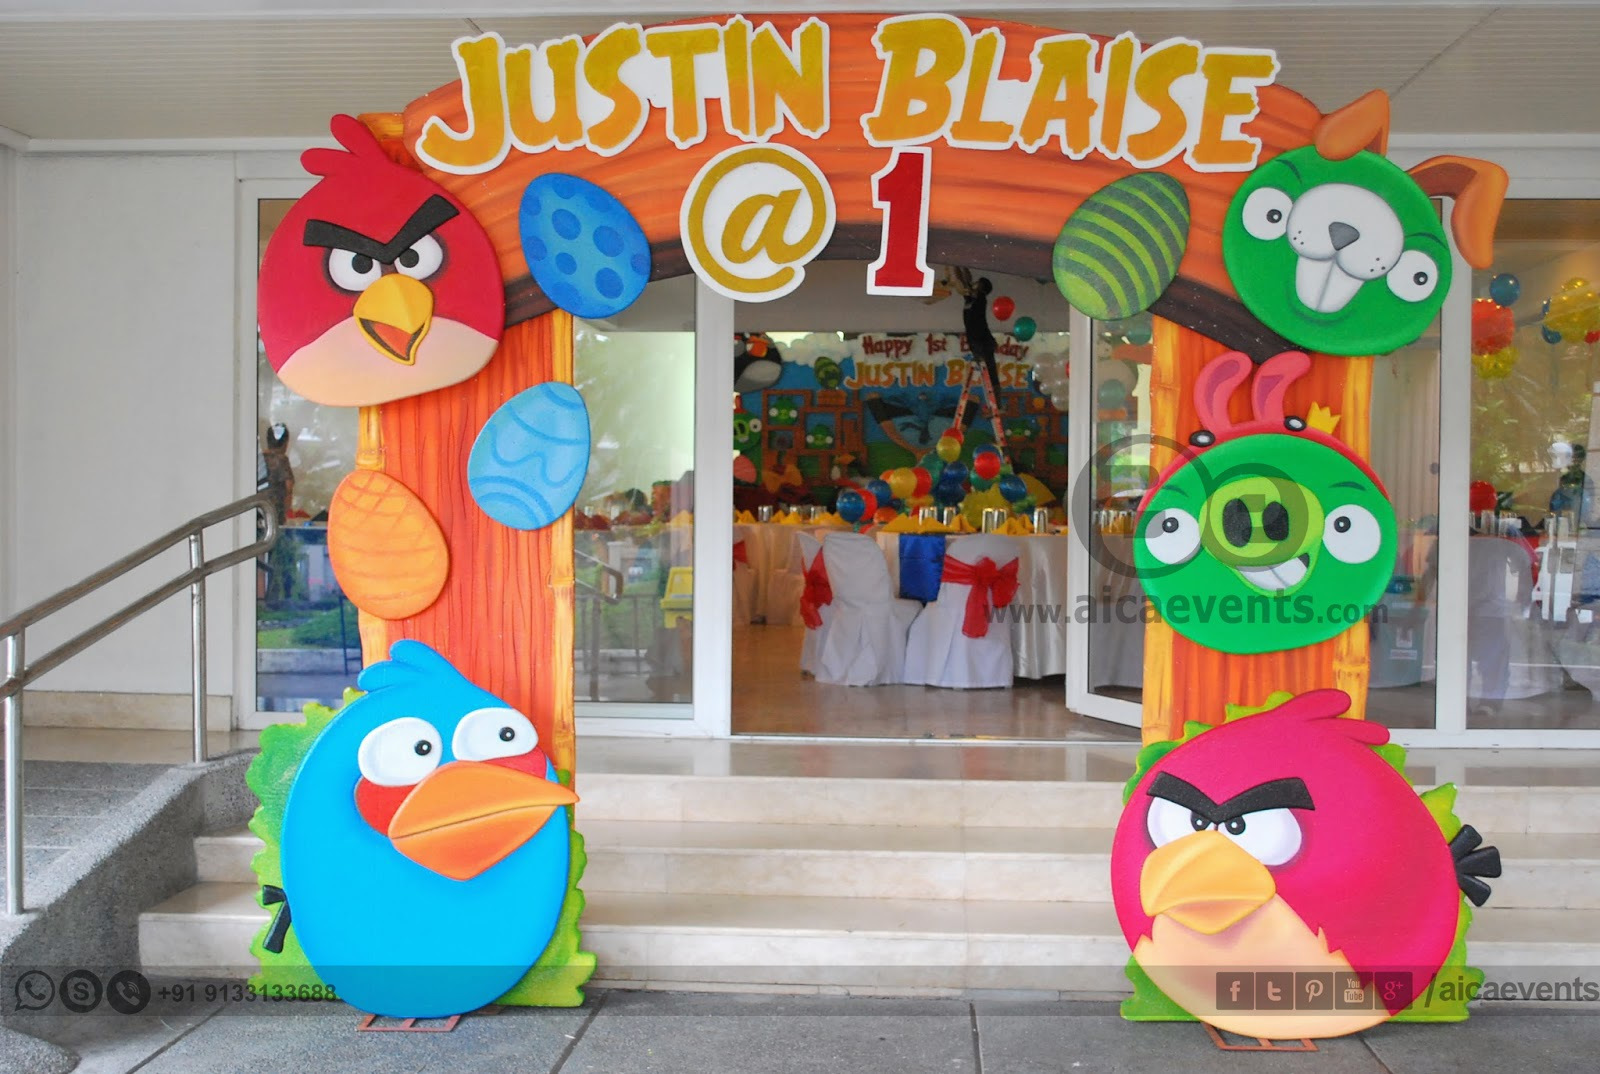 Aicaevents india angry bird theme decors for birthday parties for Angry bird birthday decoration ideas